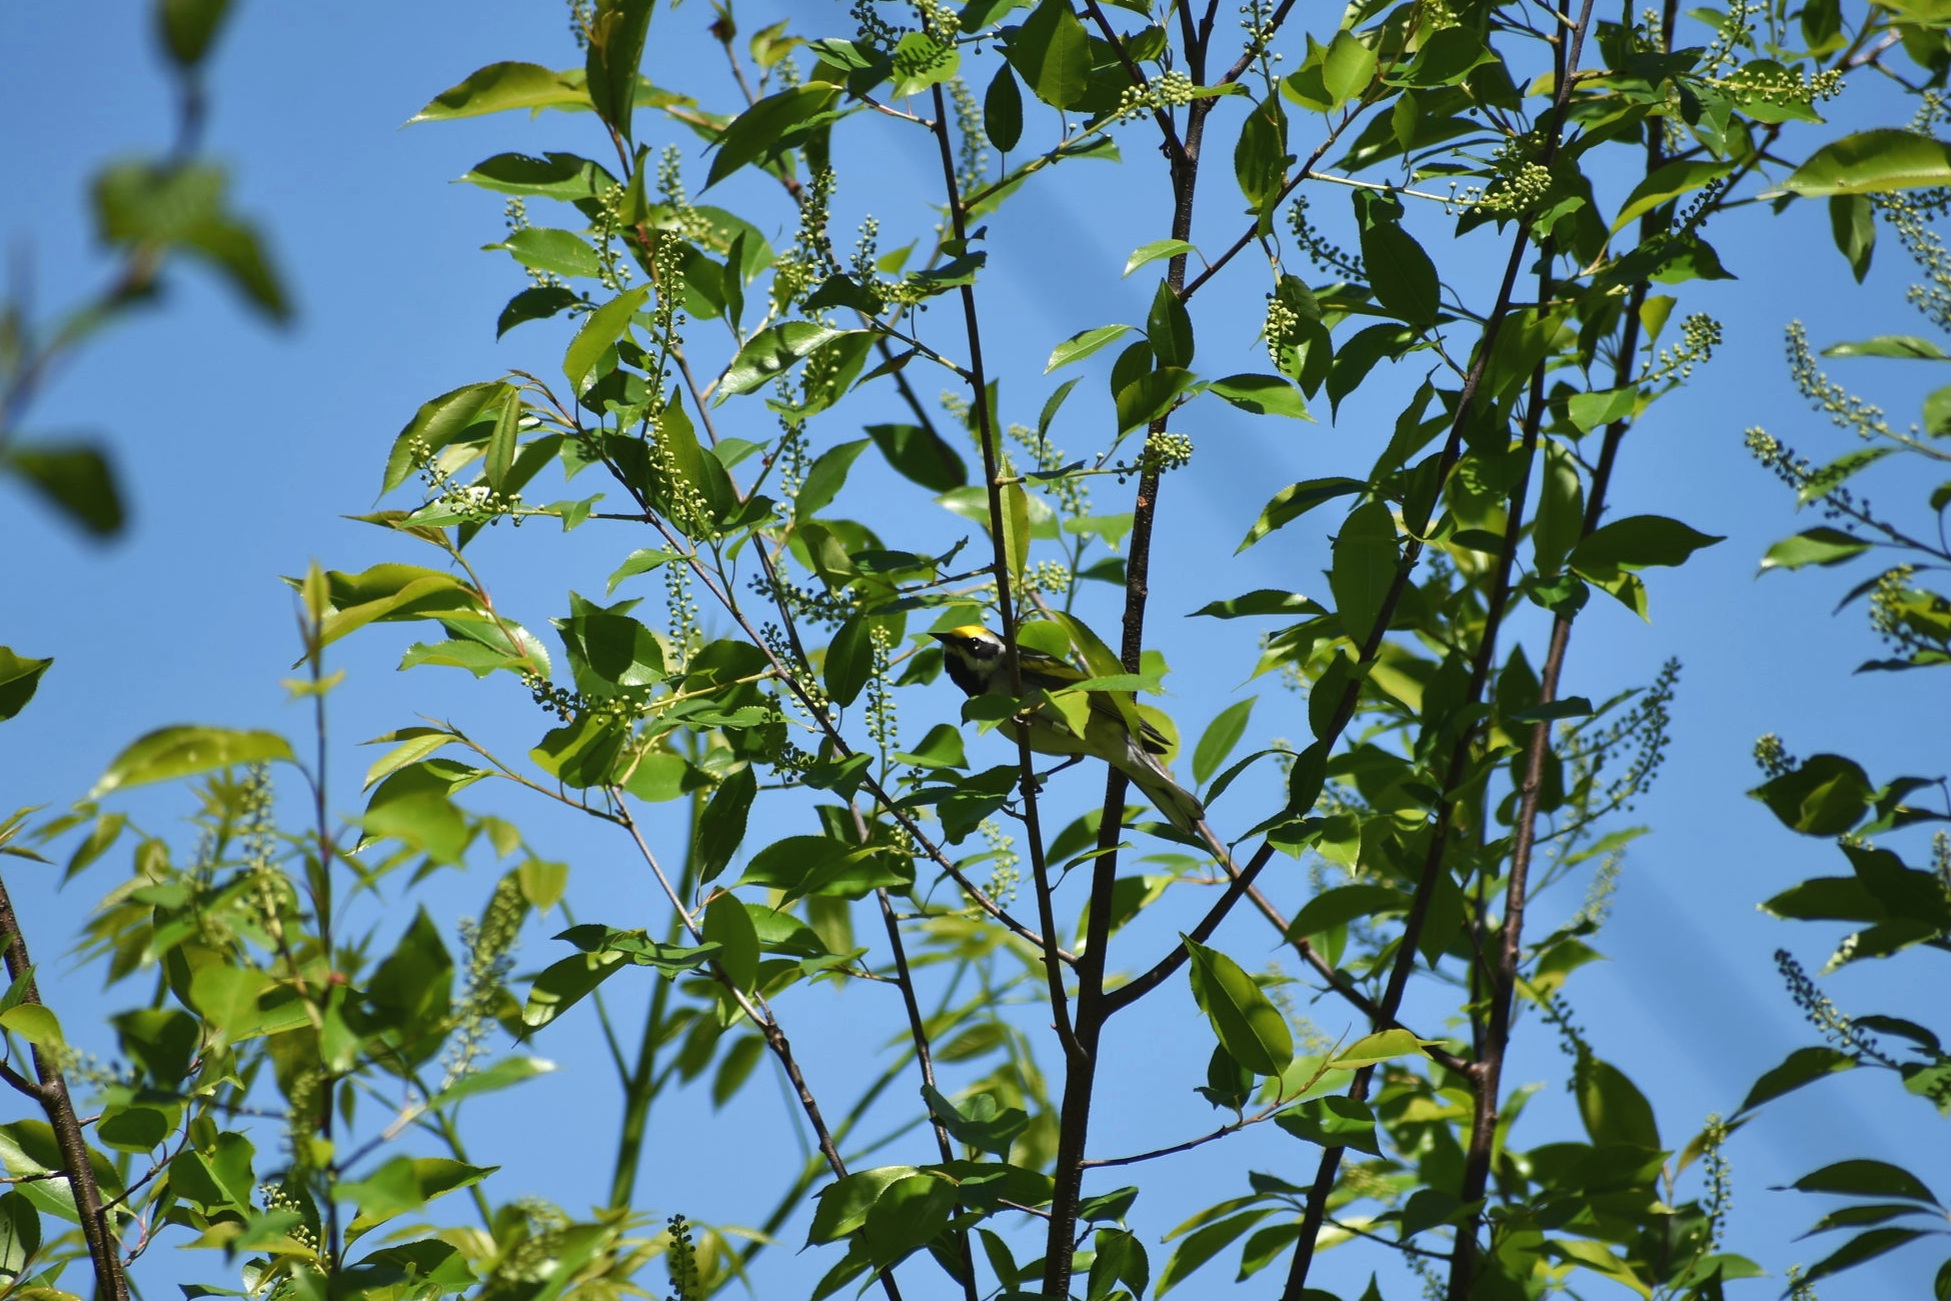 Golden Winged Warbler in young Wild Black Cherry tree